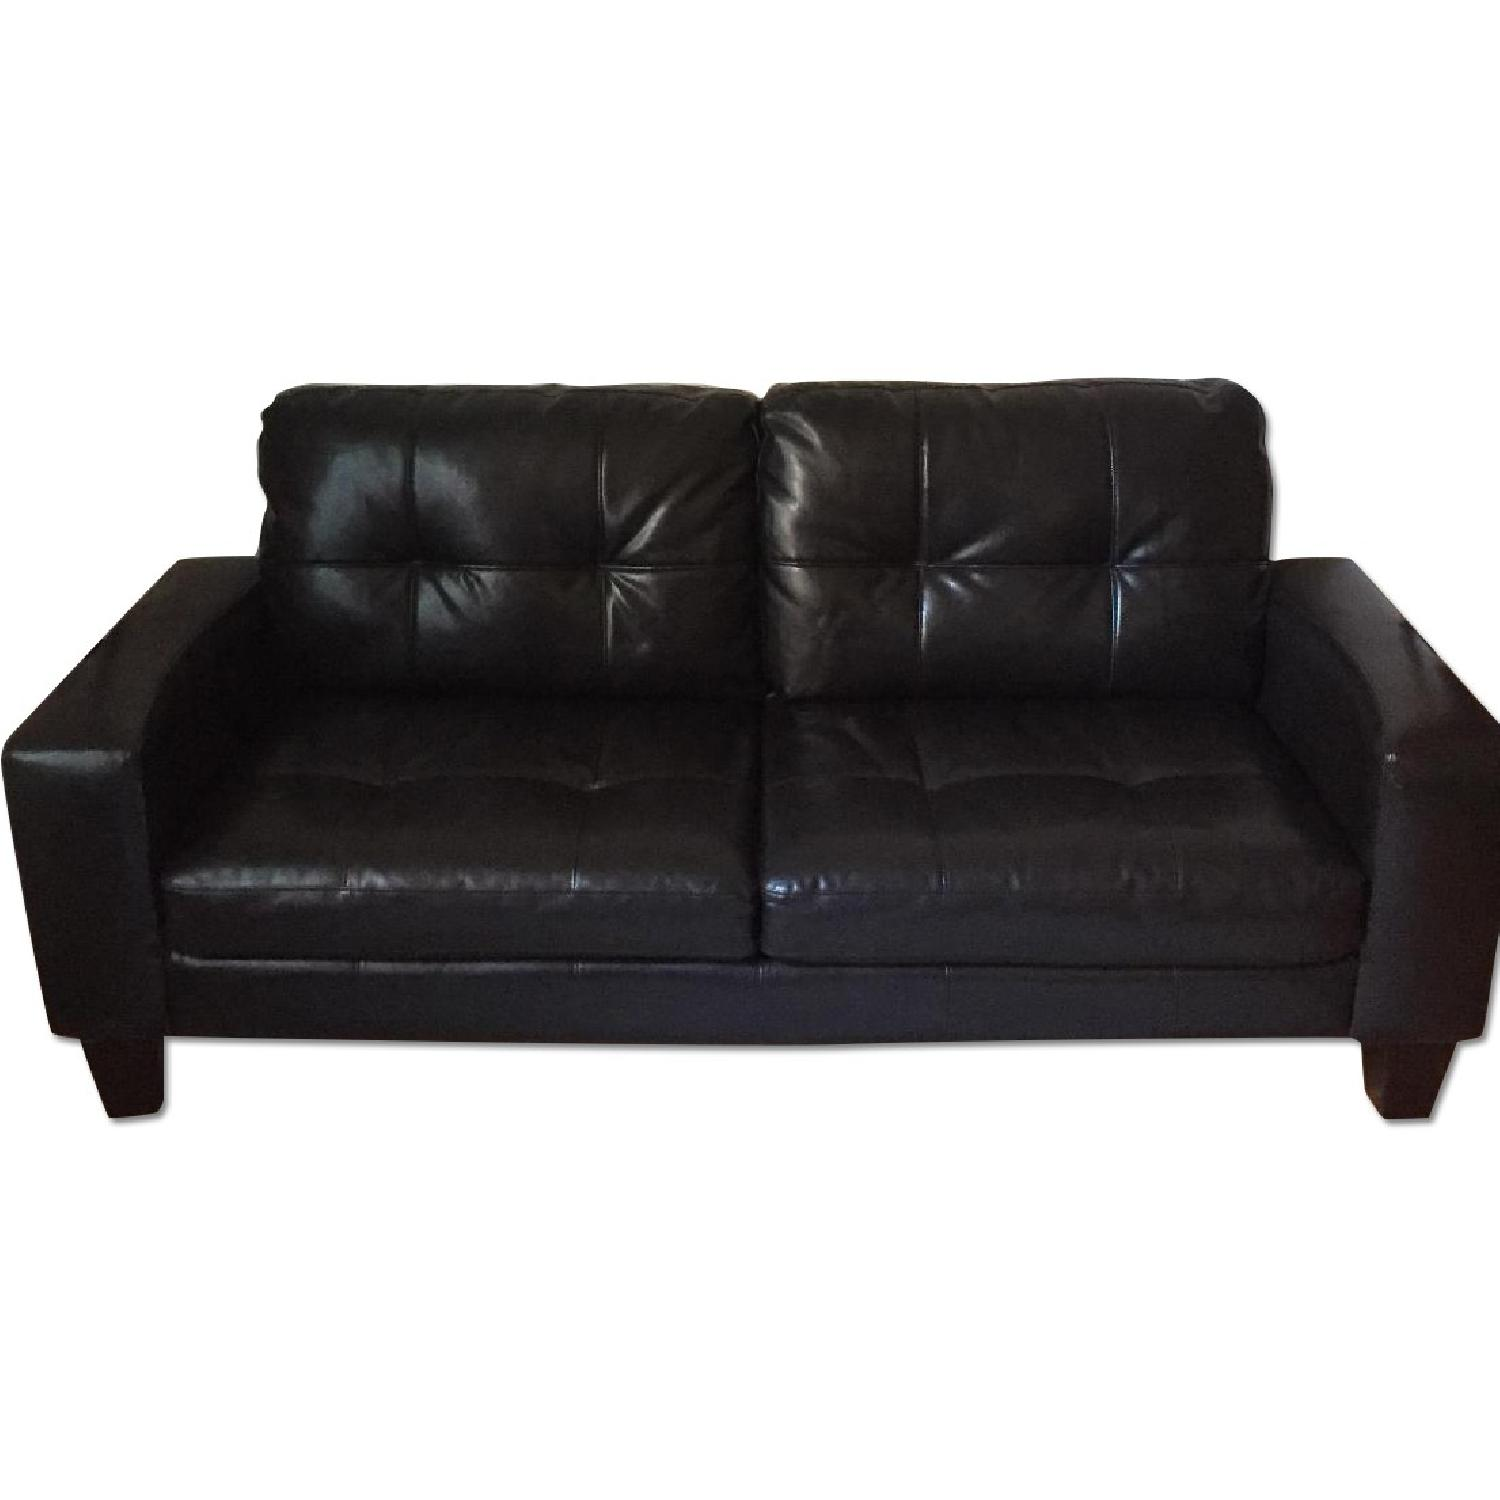 Jennifer Convertibles Black Leather Sofa - image-0